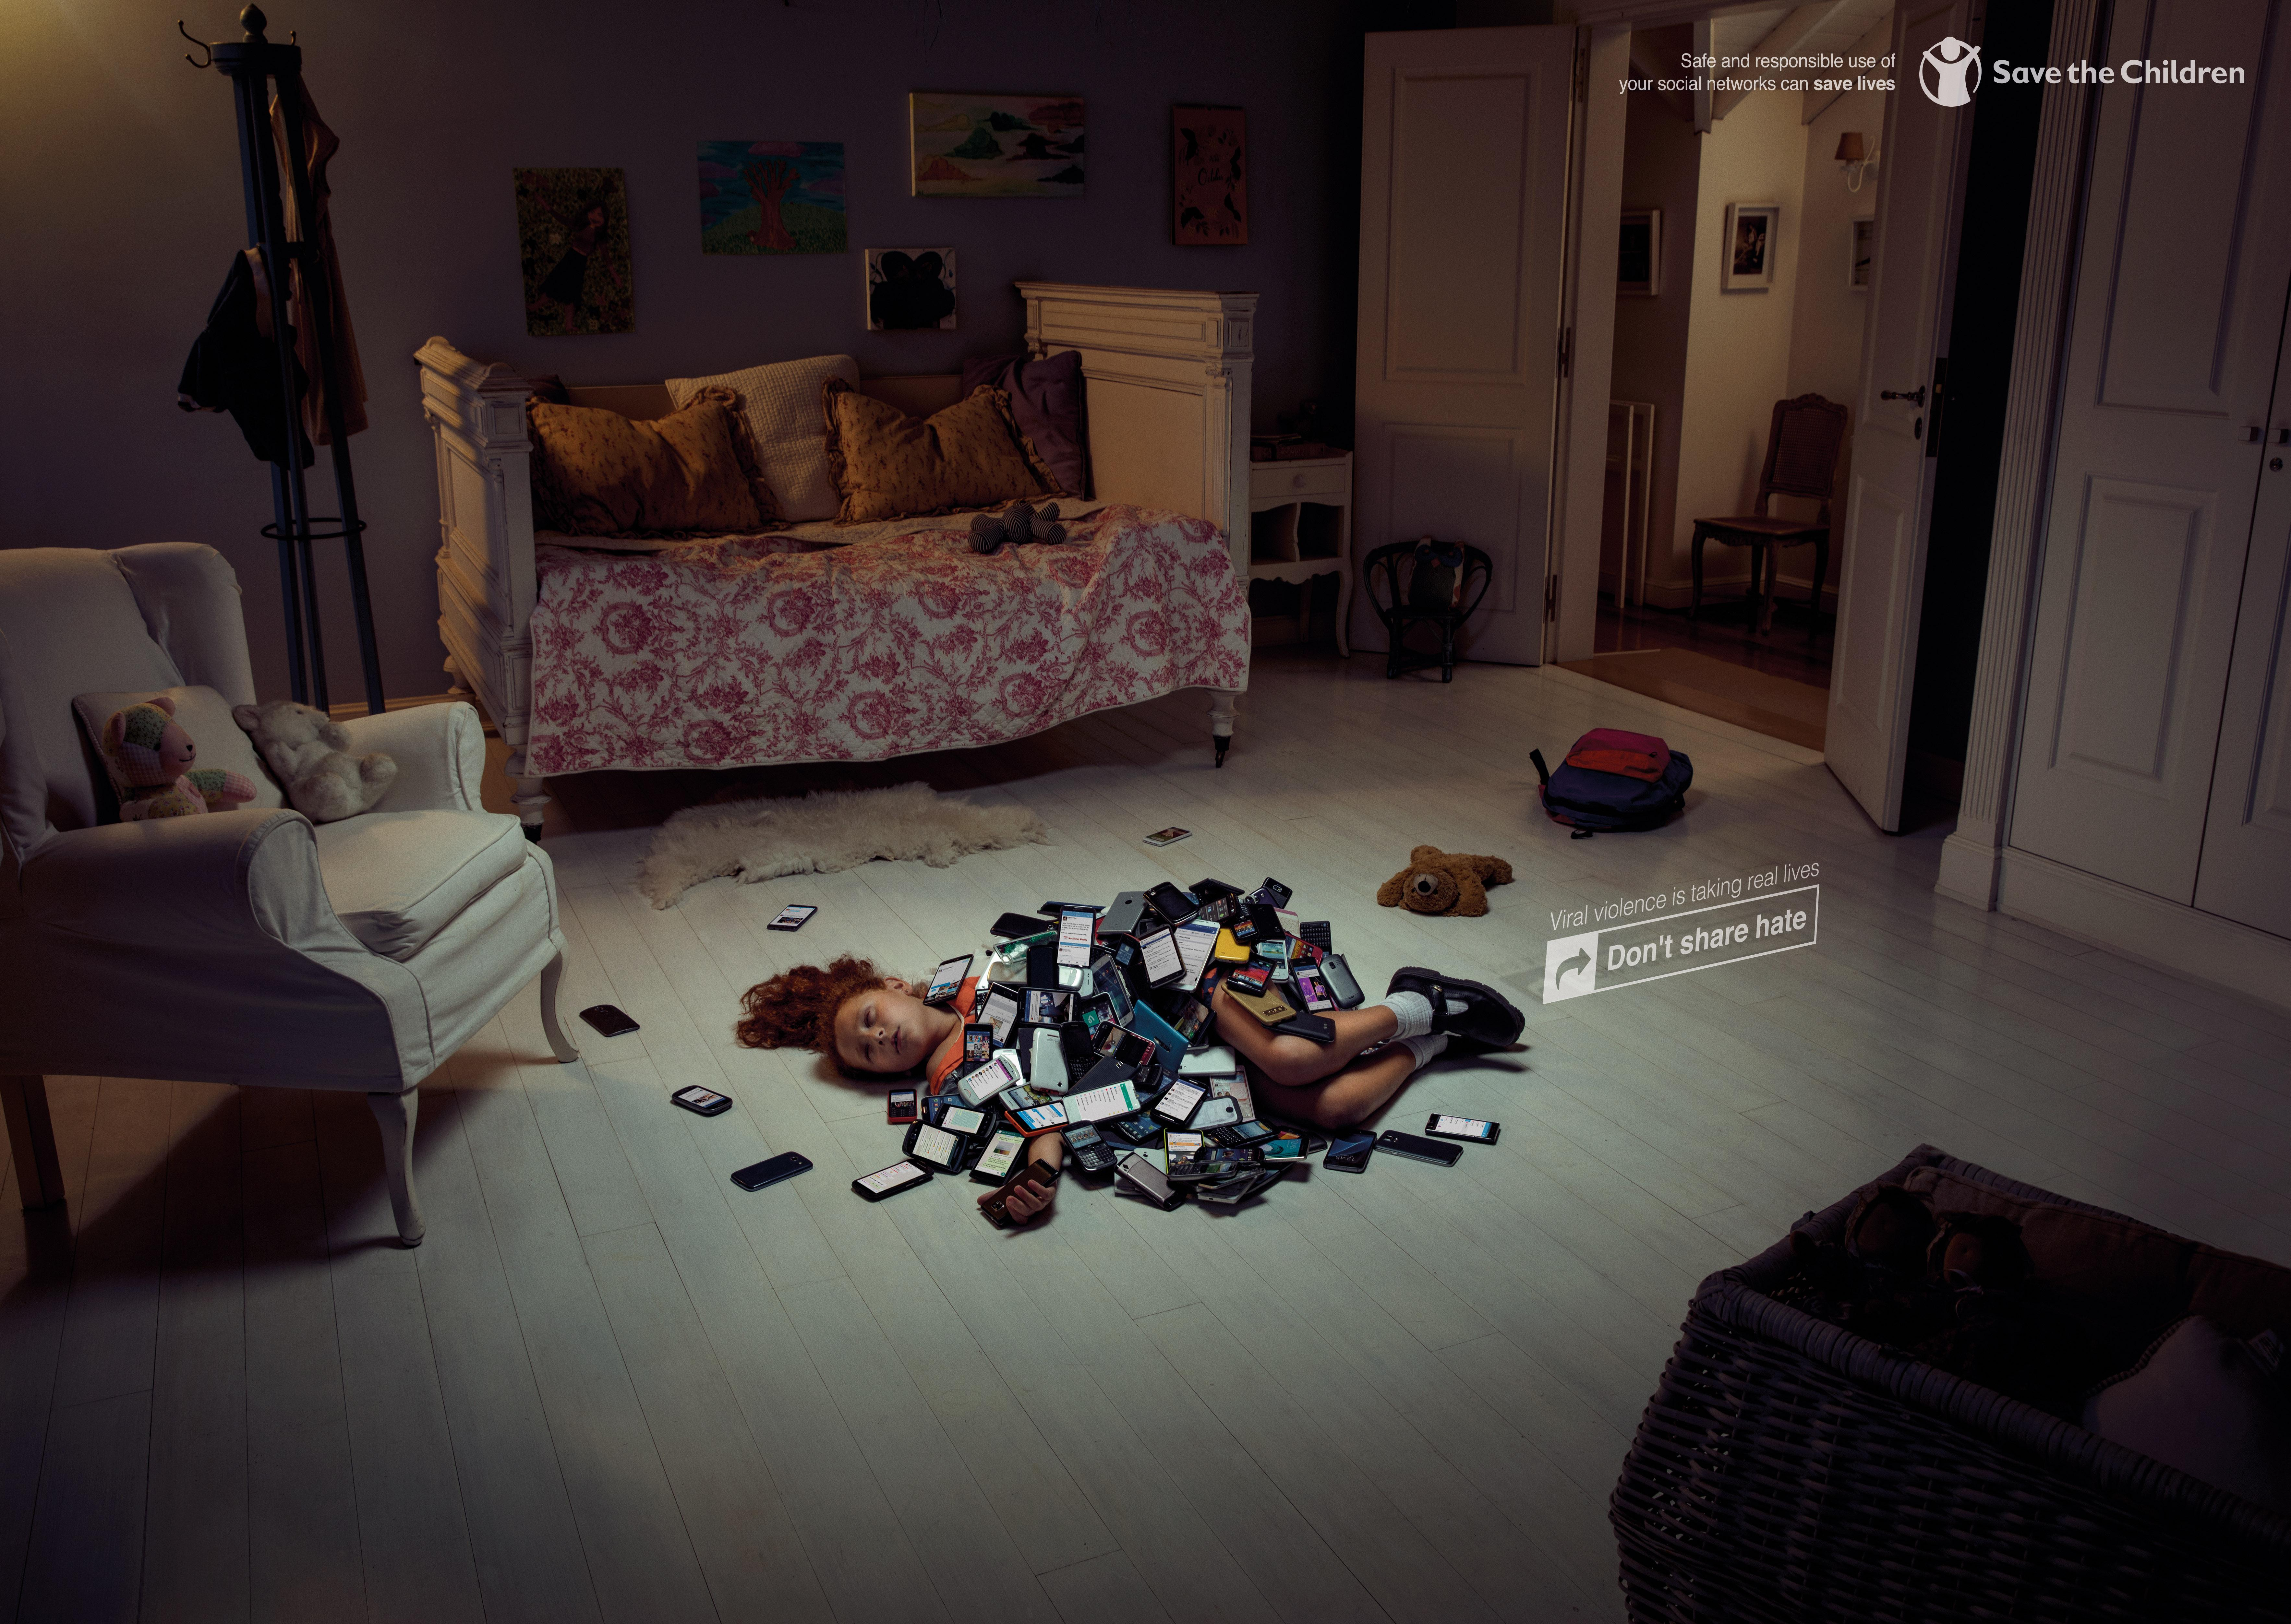 Save the Children Print Ad - Girl Room